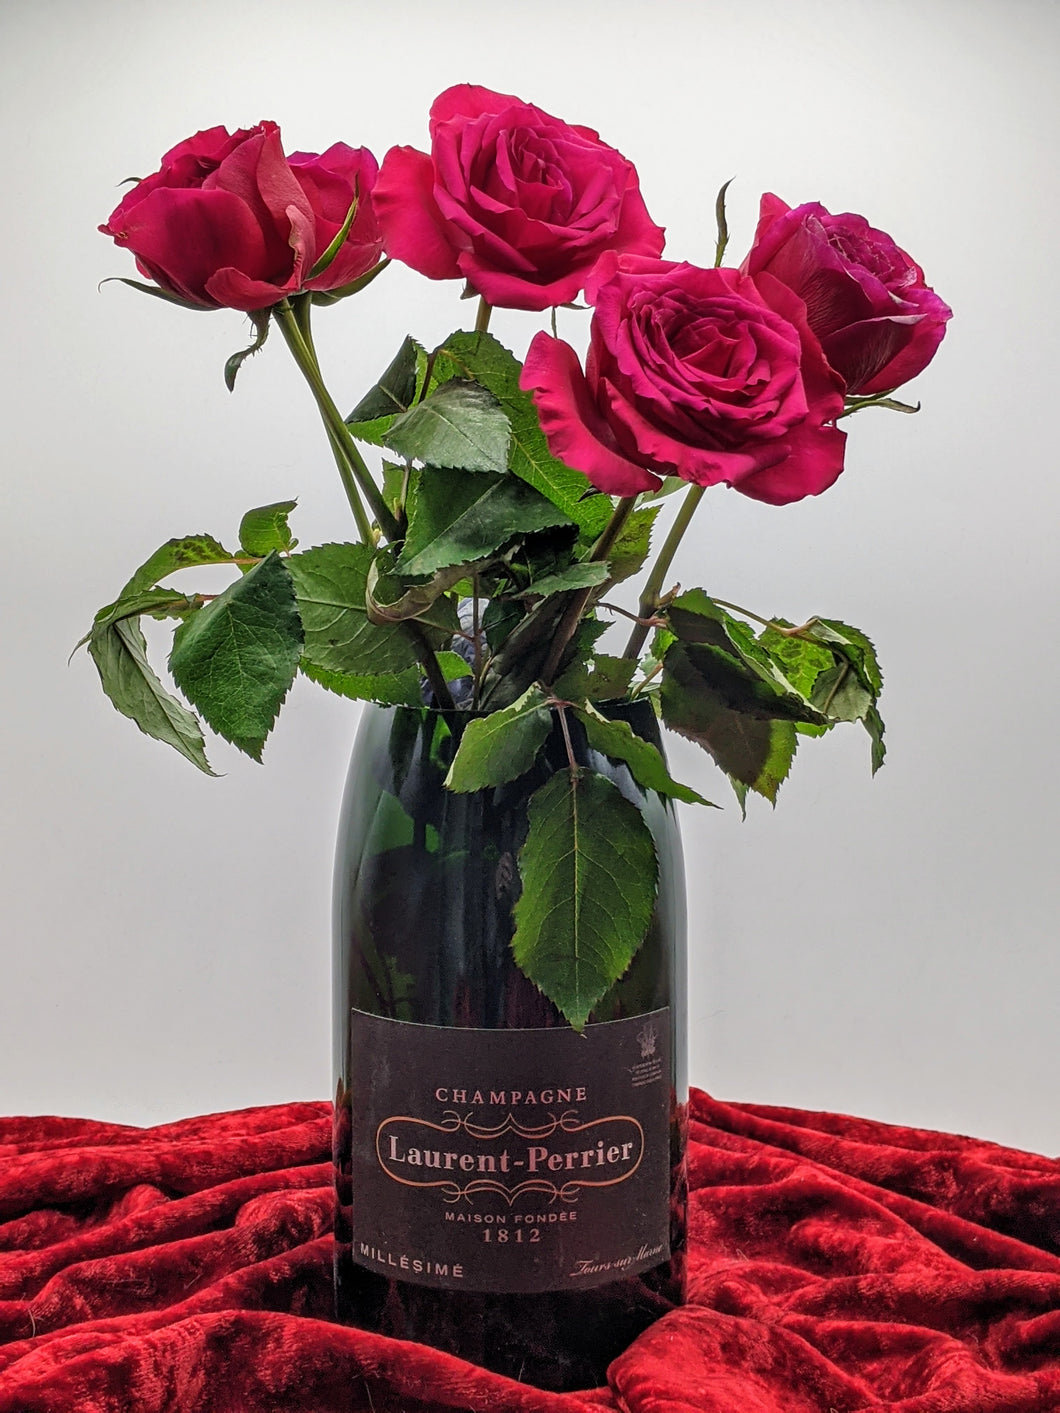 Laurent Perrier champagne bottle vase